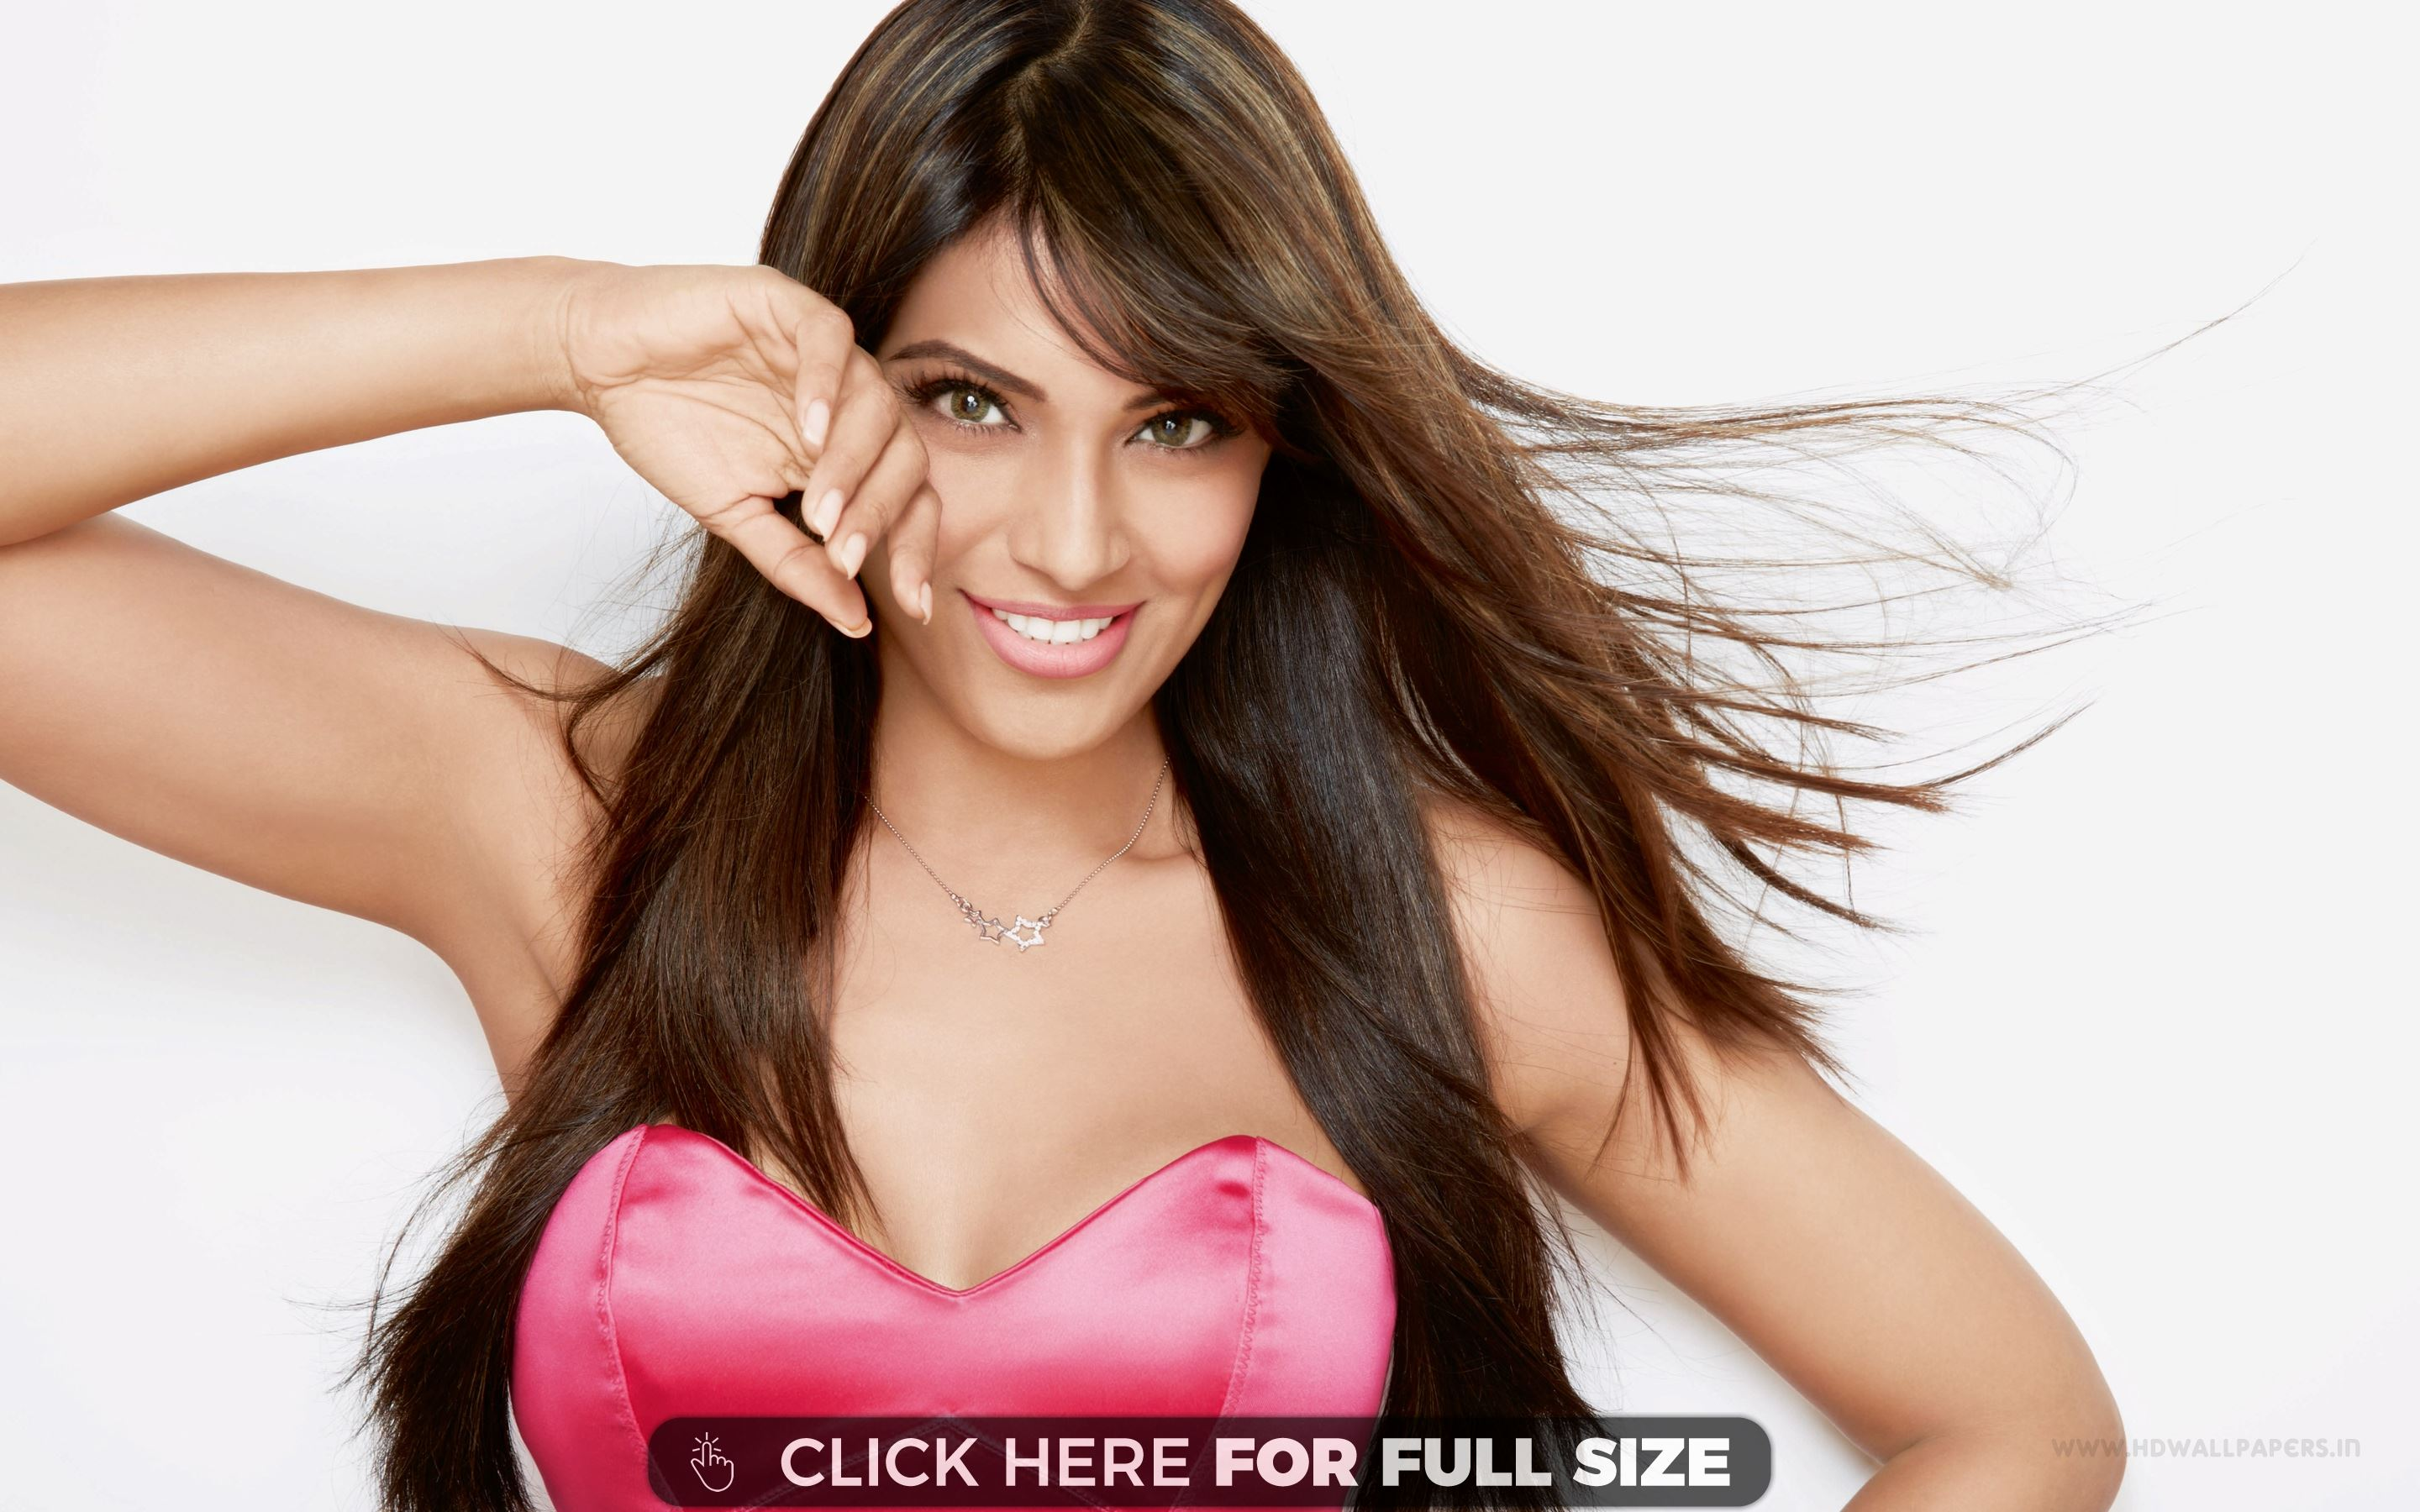 Bipasha-Basu-Breaking-News-and-pics-videos-with-gossip-aisakya-in-wallpaper-wpc5802842